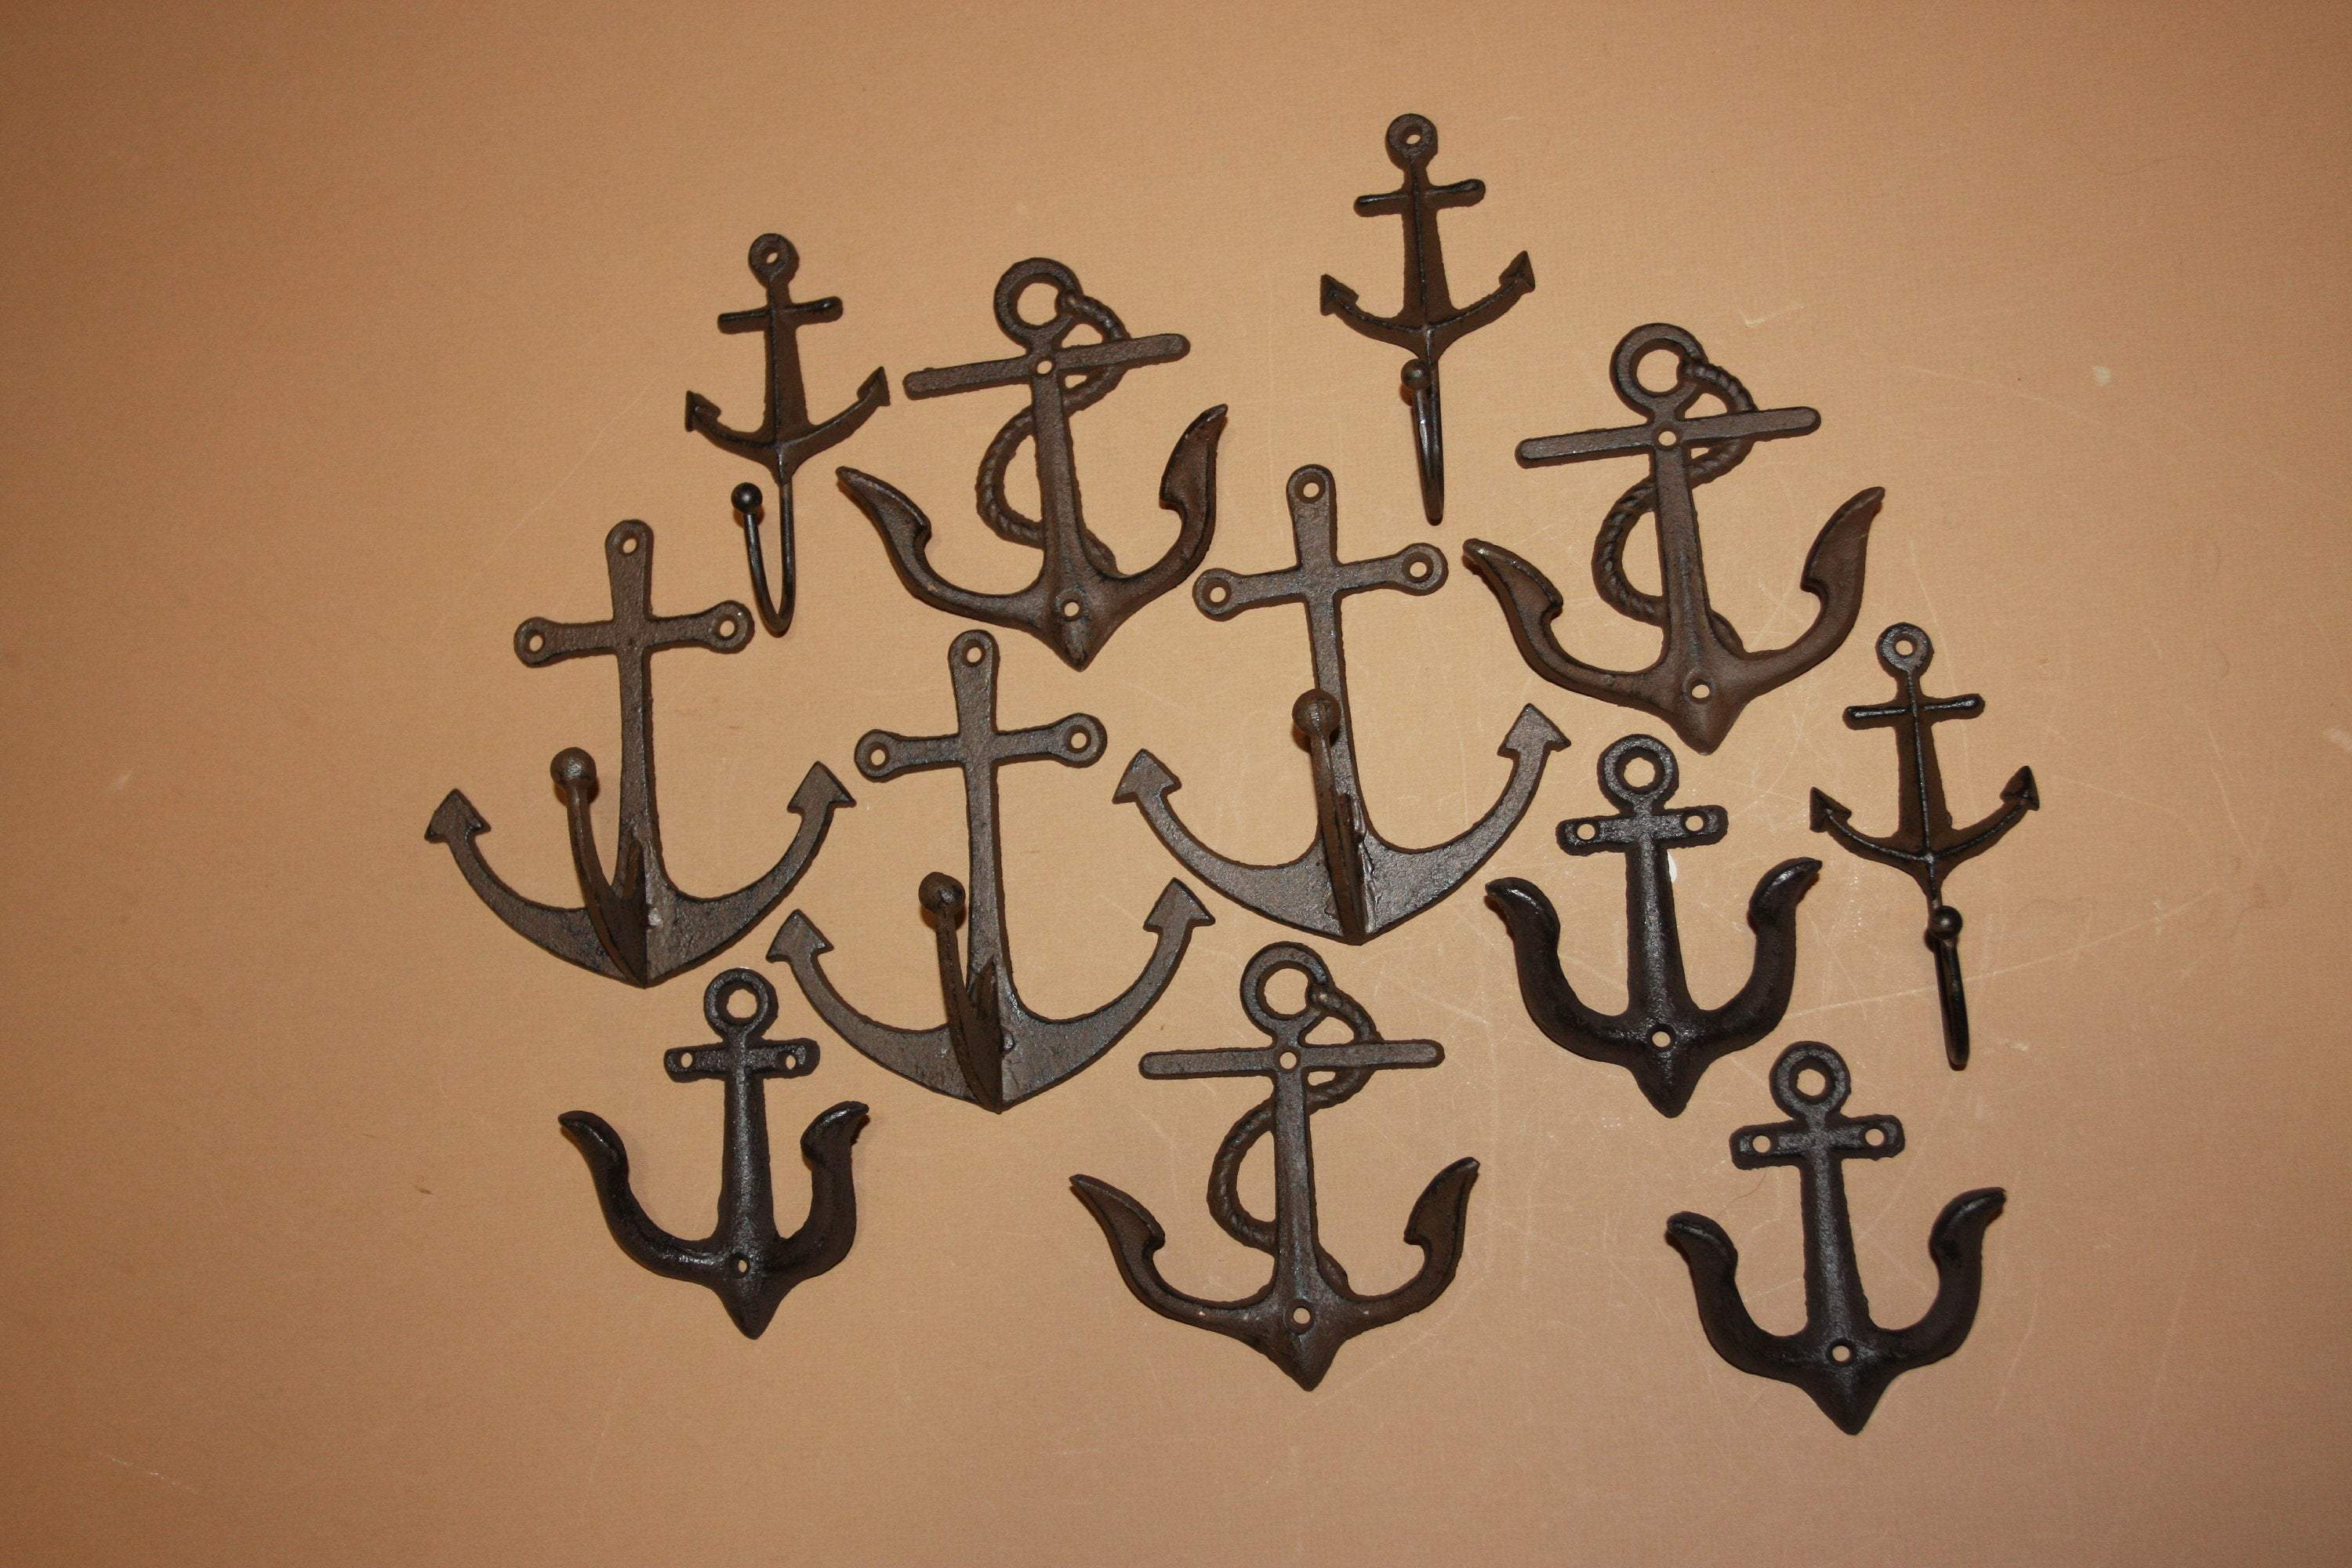 12) Anchor Stocking Stuffers, Cast Iron Wall Hooks, Volume Bulk Priced, Shipping Included